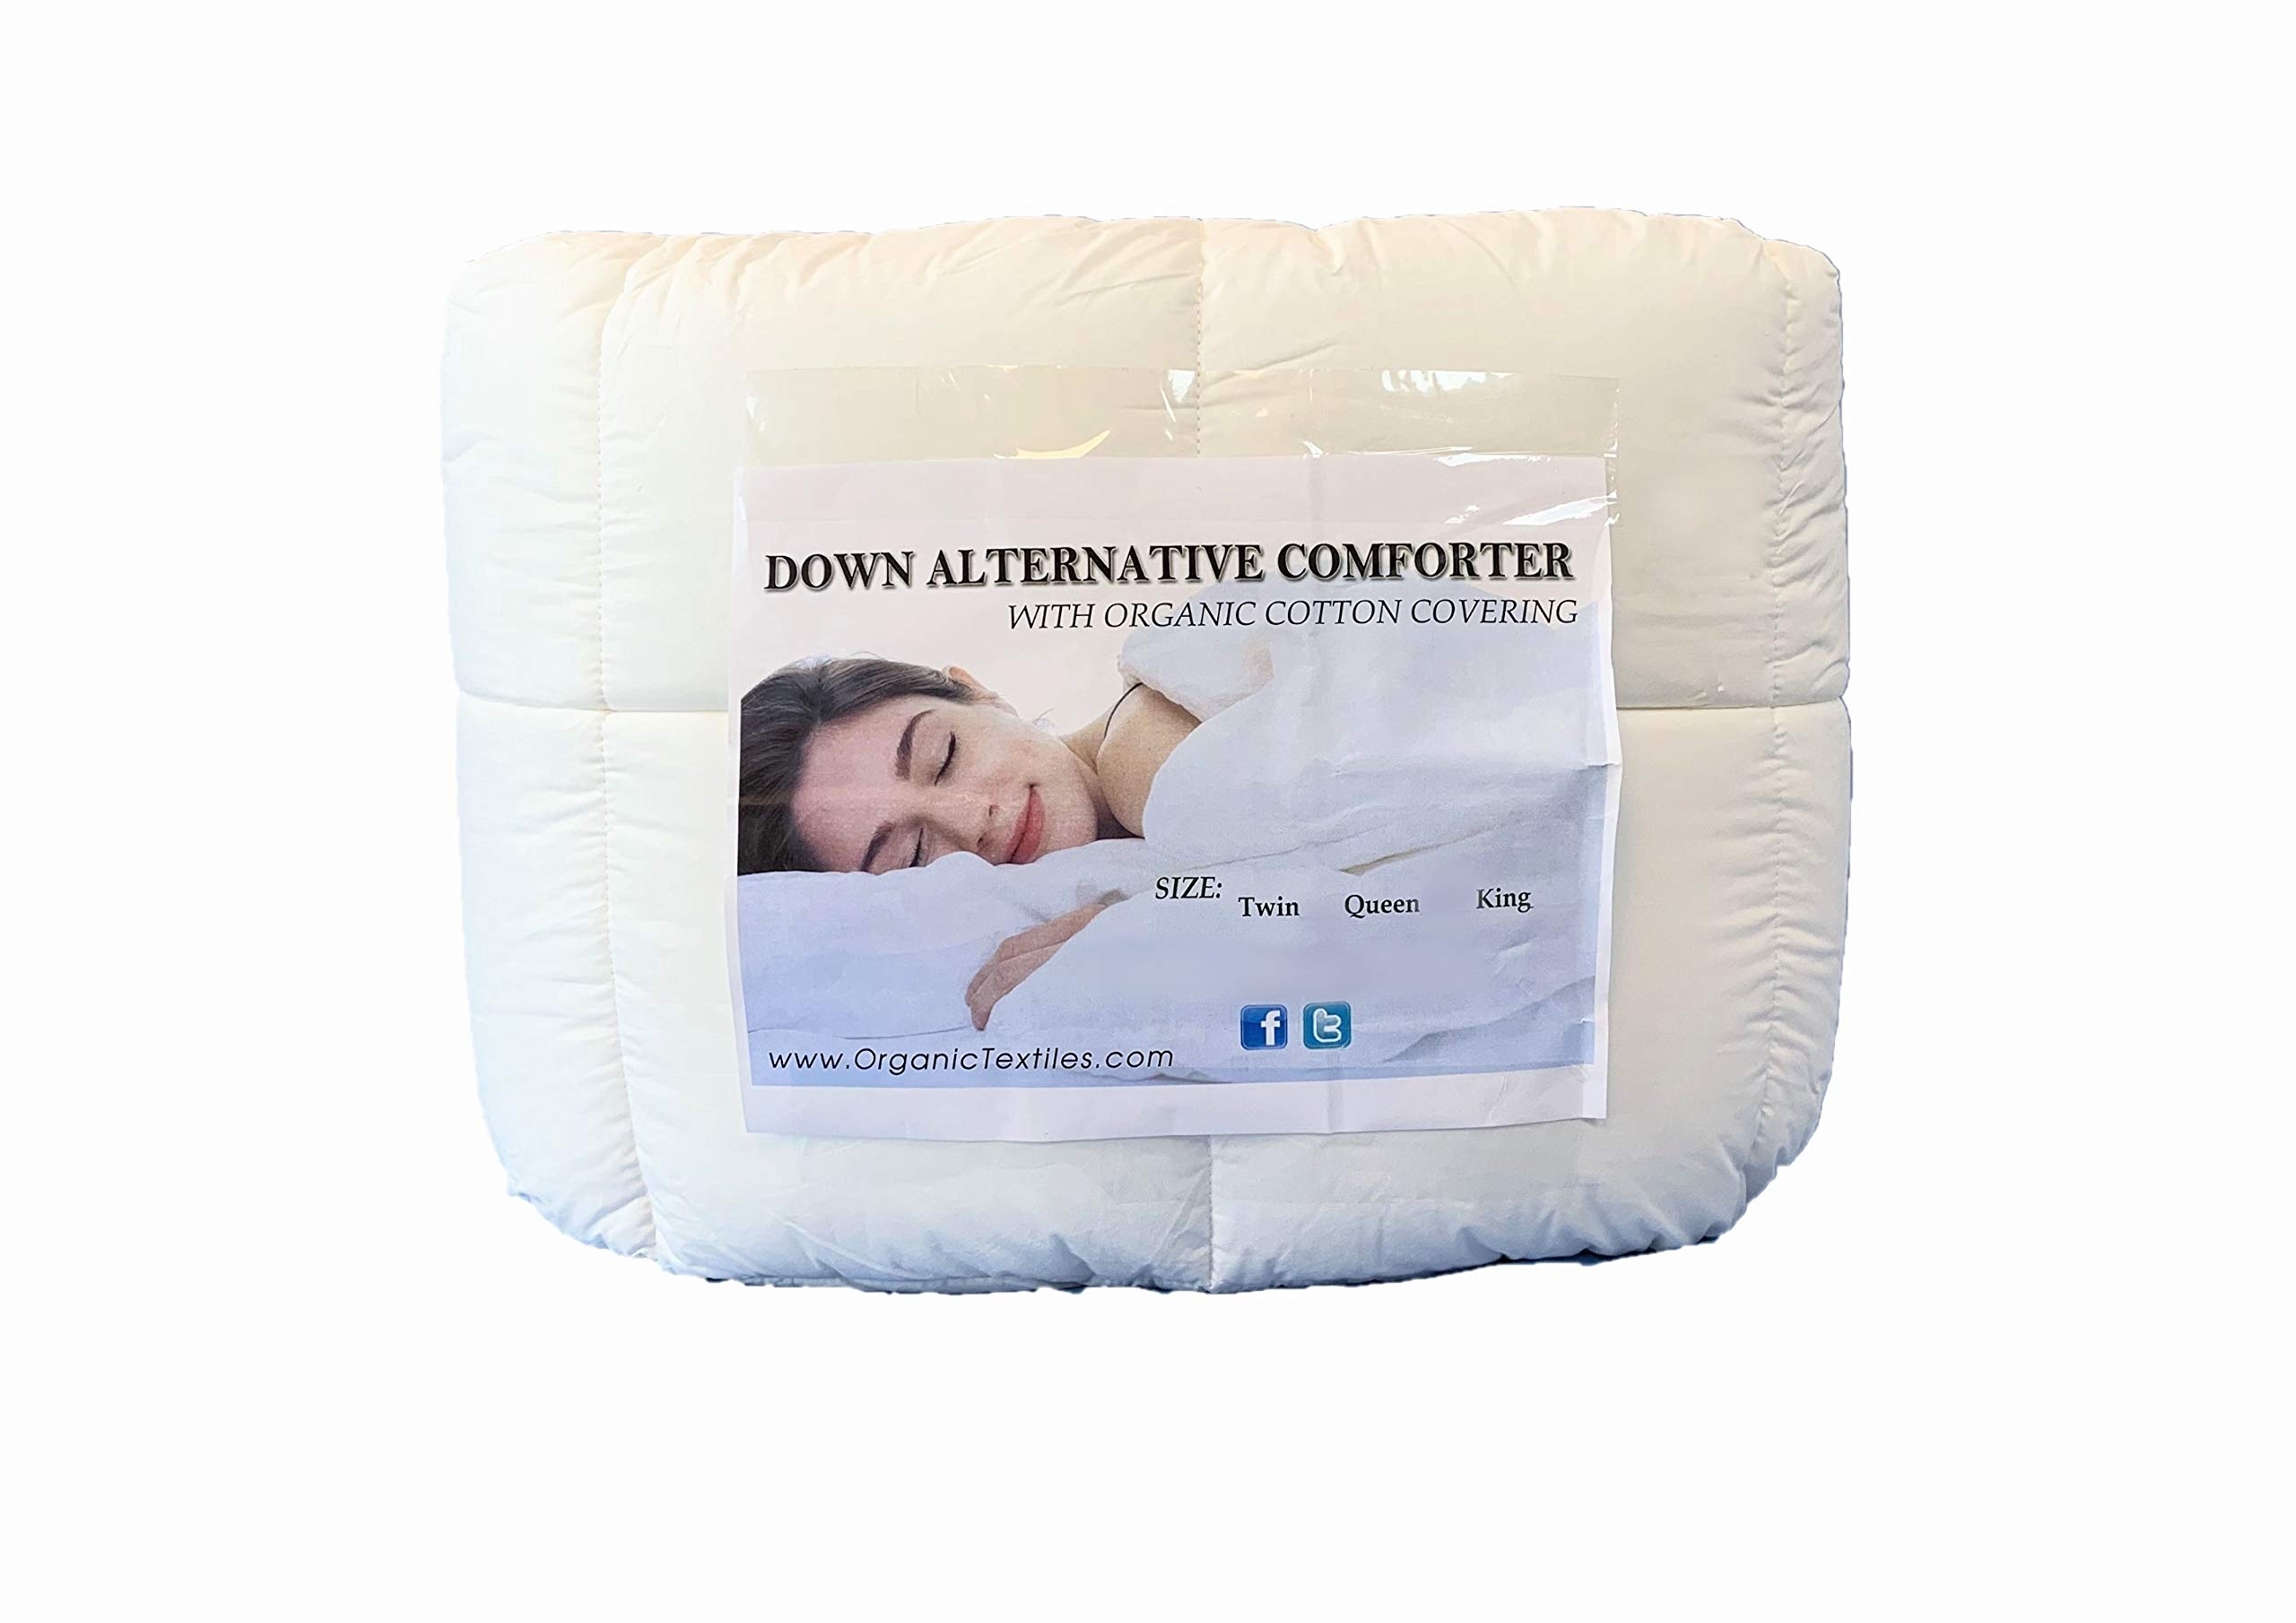 OrganicTextiles White Down Alternative Bed Comforter, Twin, with Premium Organic Cotton Covering – Eco Friendly Alternative - No Toxic Chemicals - Hypoallergenic Bedding - All Seasons Use